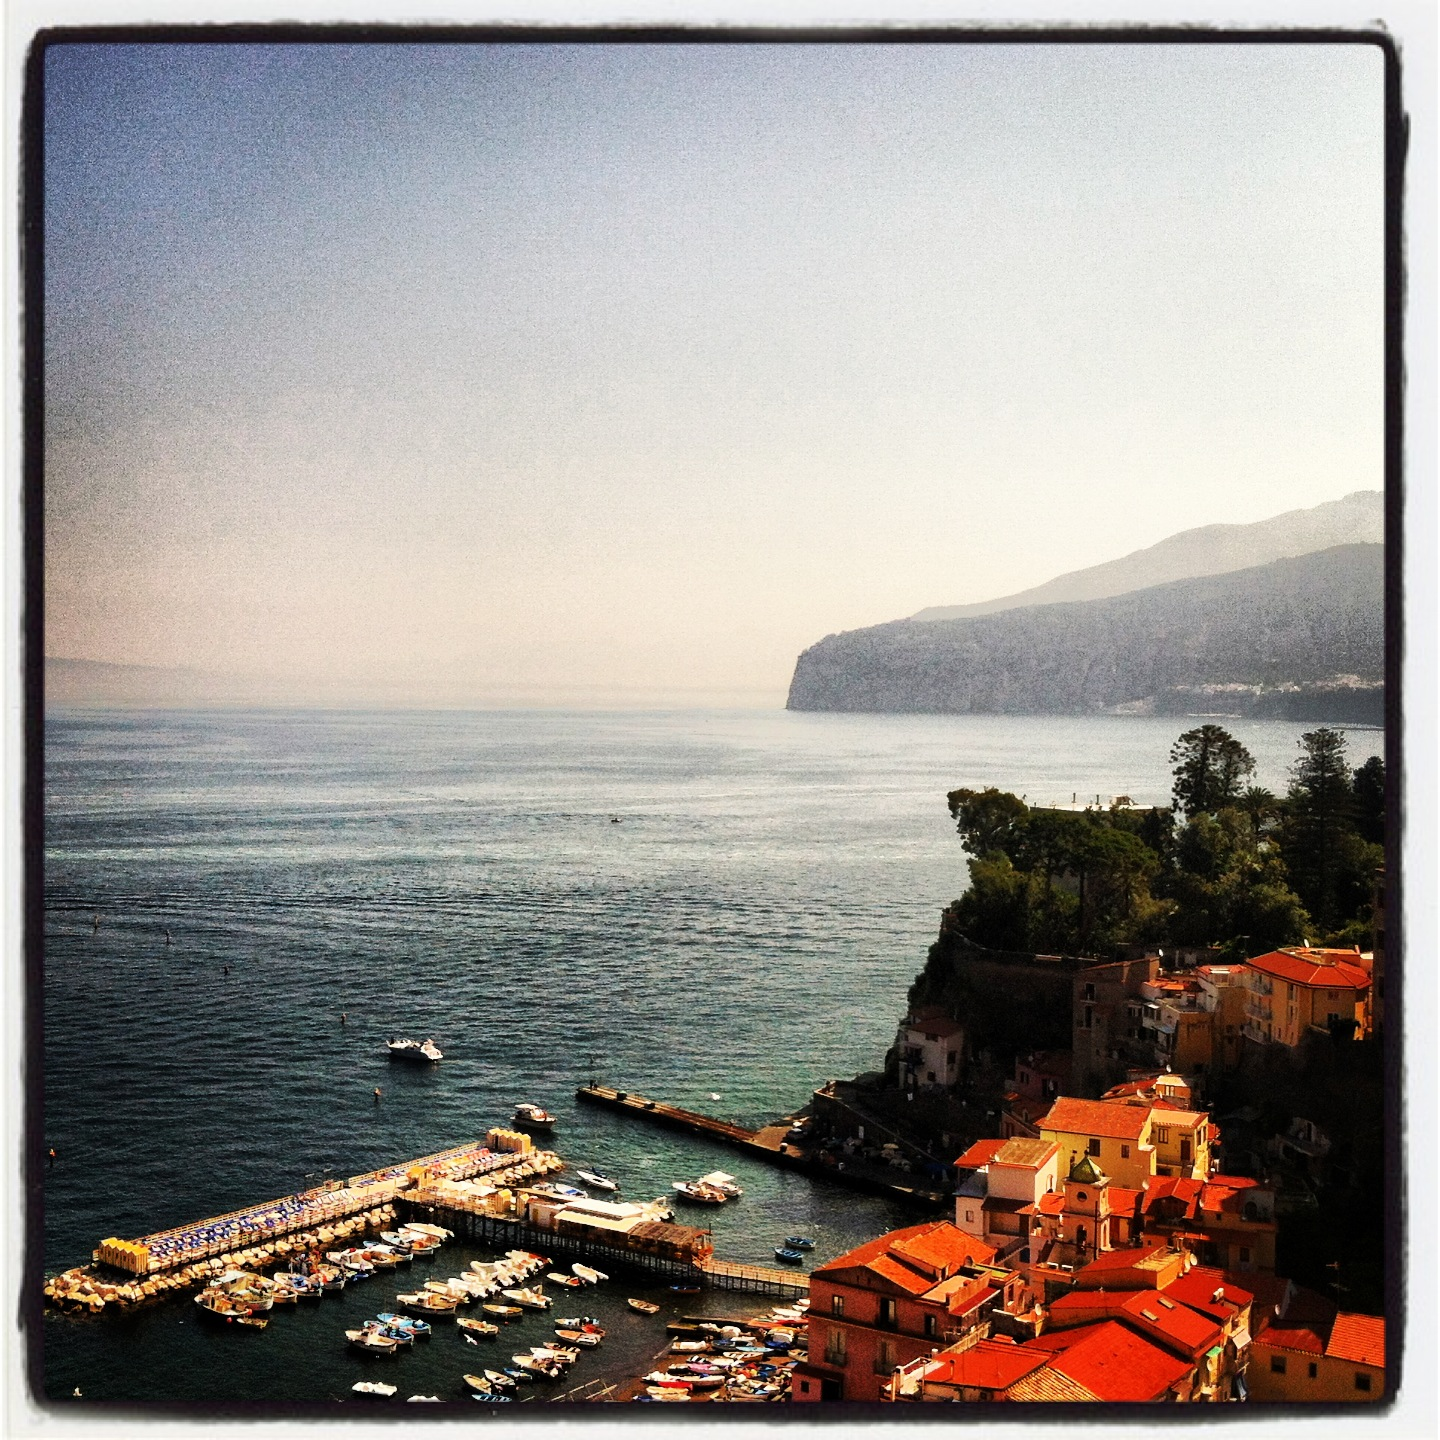 Sorrento, Italy via Instagram